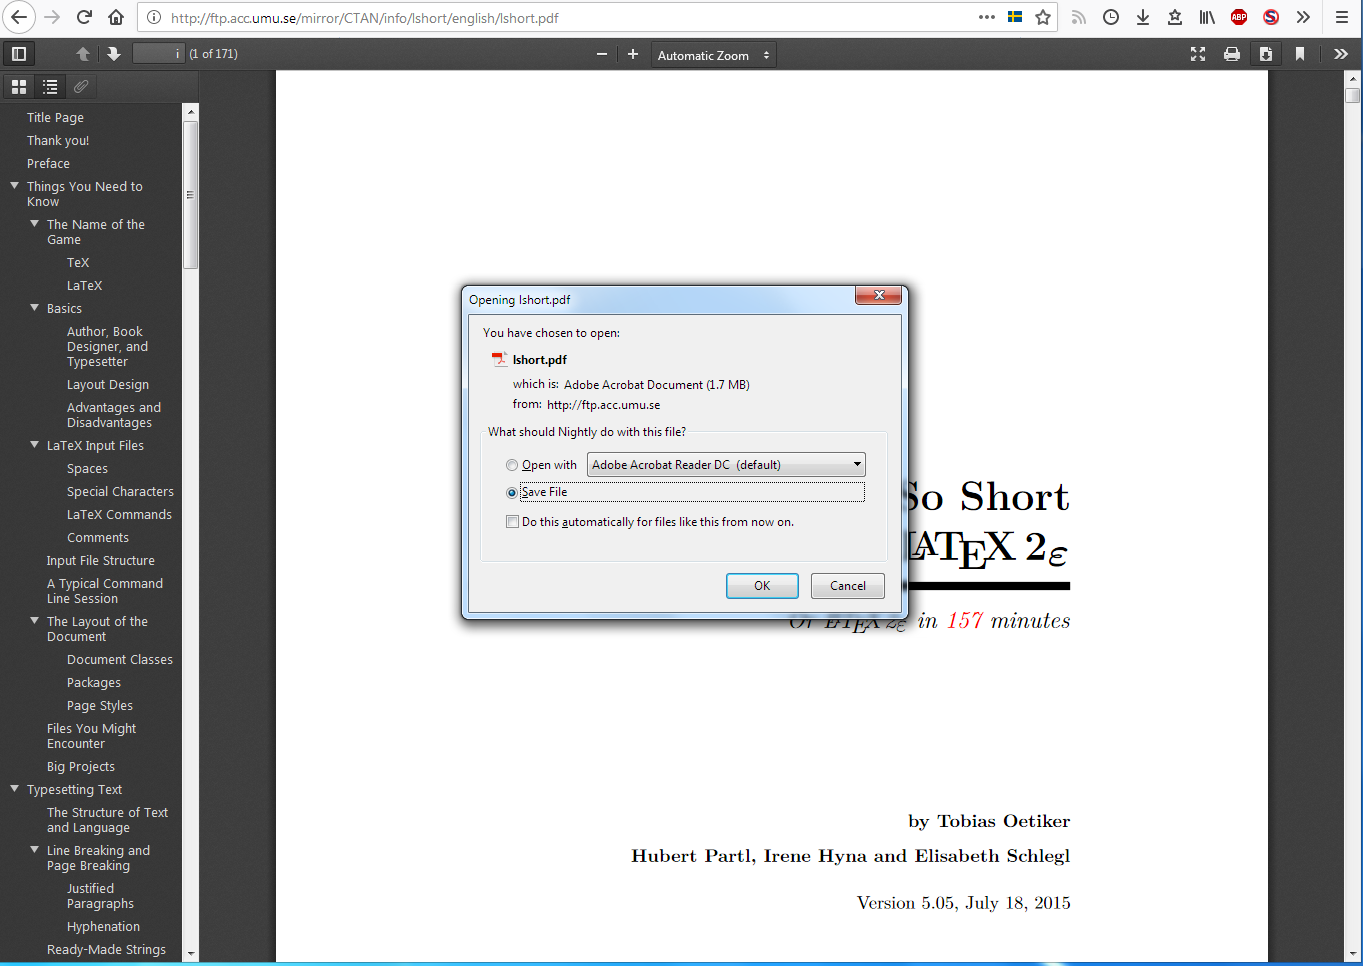 Feature request: 'Save as' option when downloading PDFs